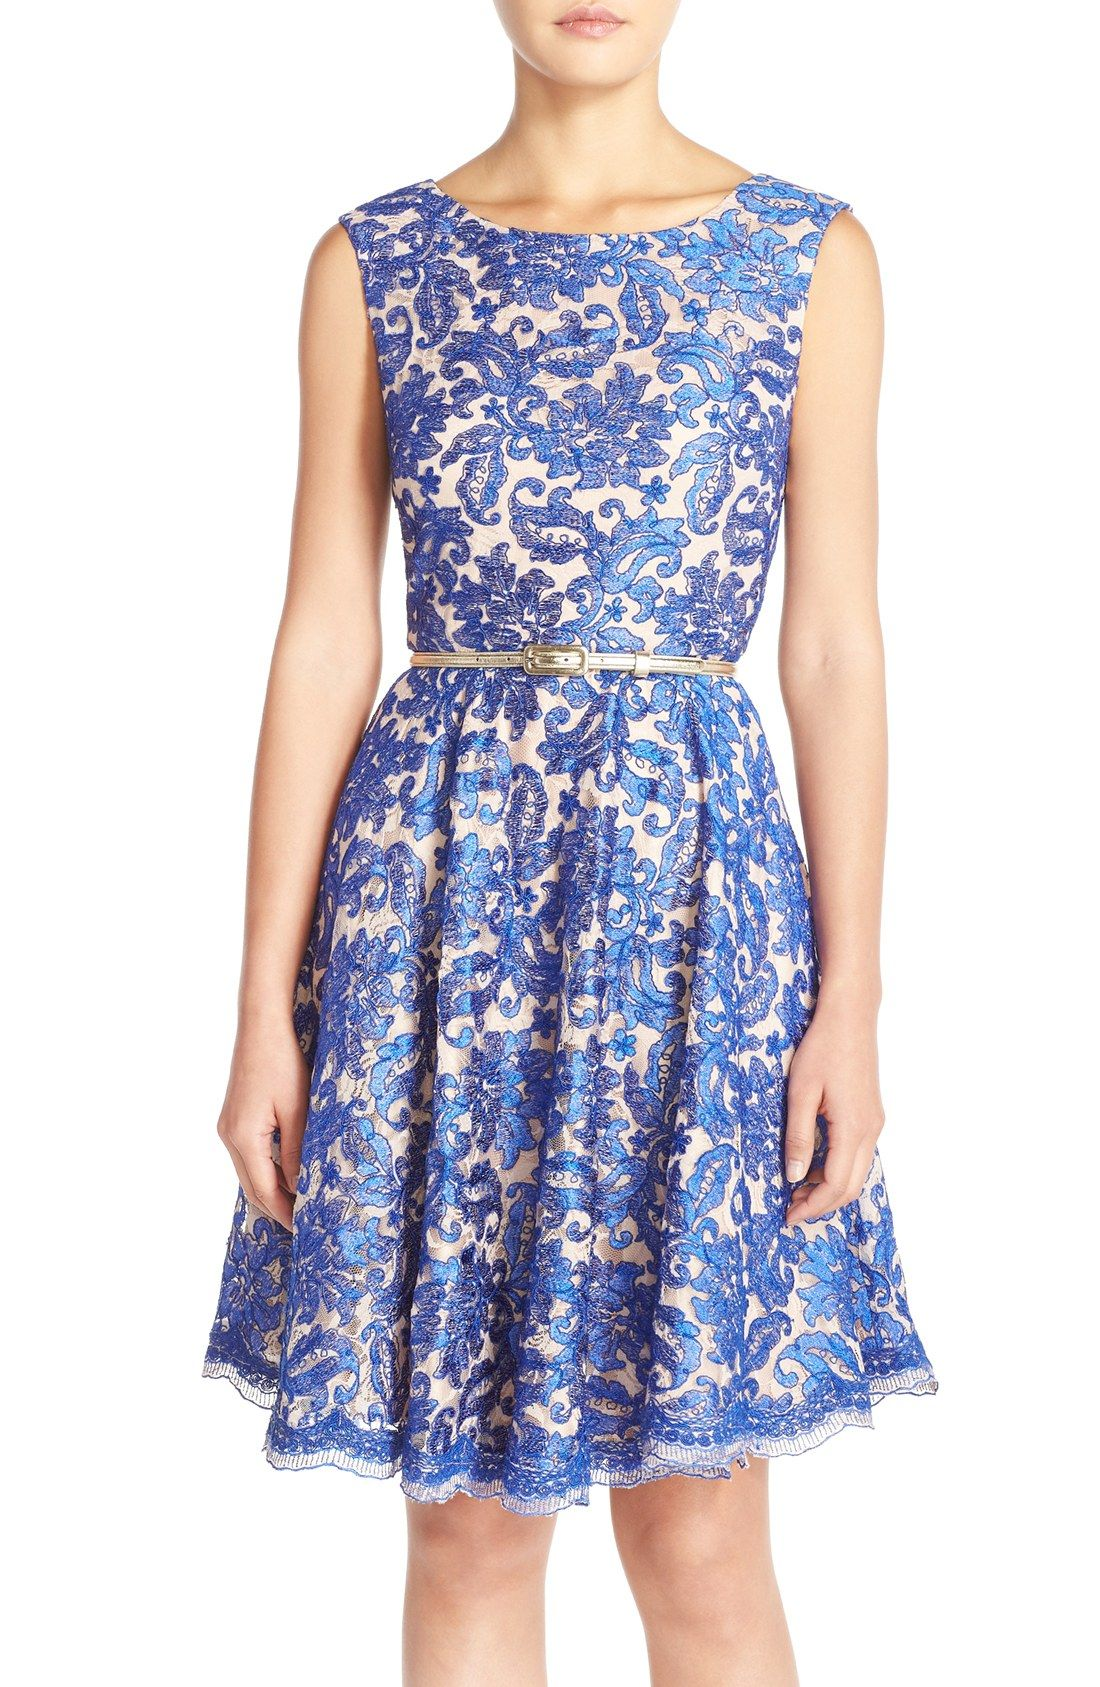 Nordstrom is selling the same dress as ModCloth! Eliza J Embroidered ...